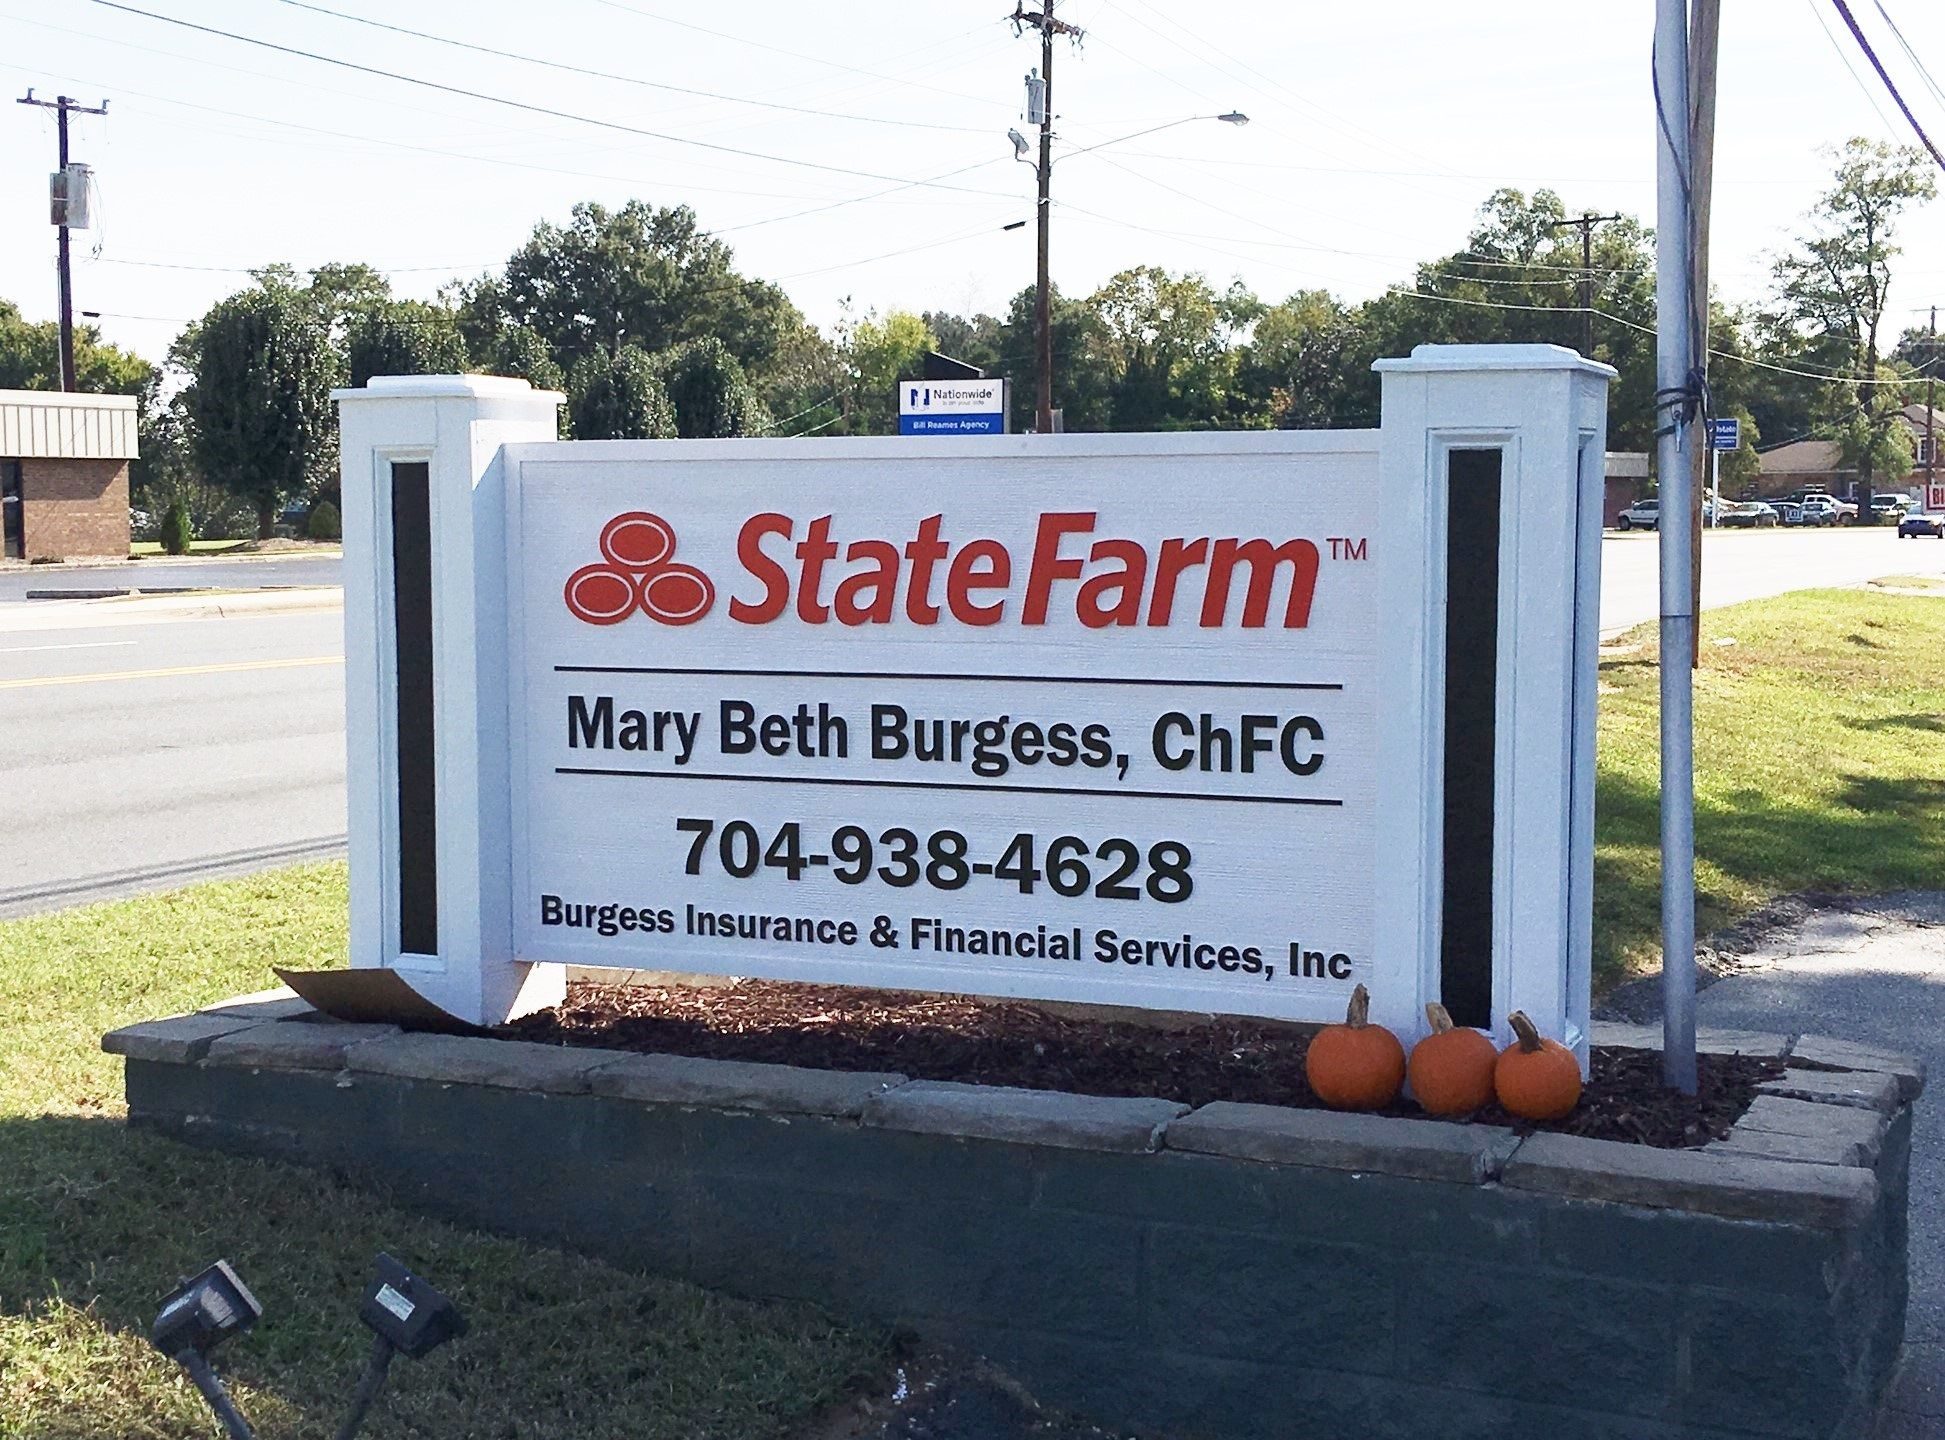 Custom Made Hdu Panel Sign For State Farm Office In Kannapolis Nc